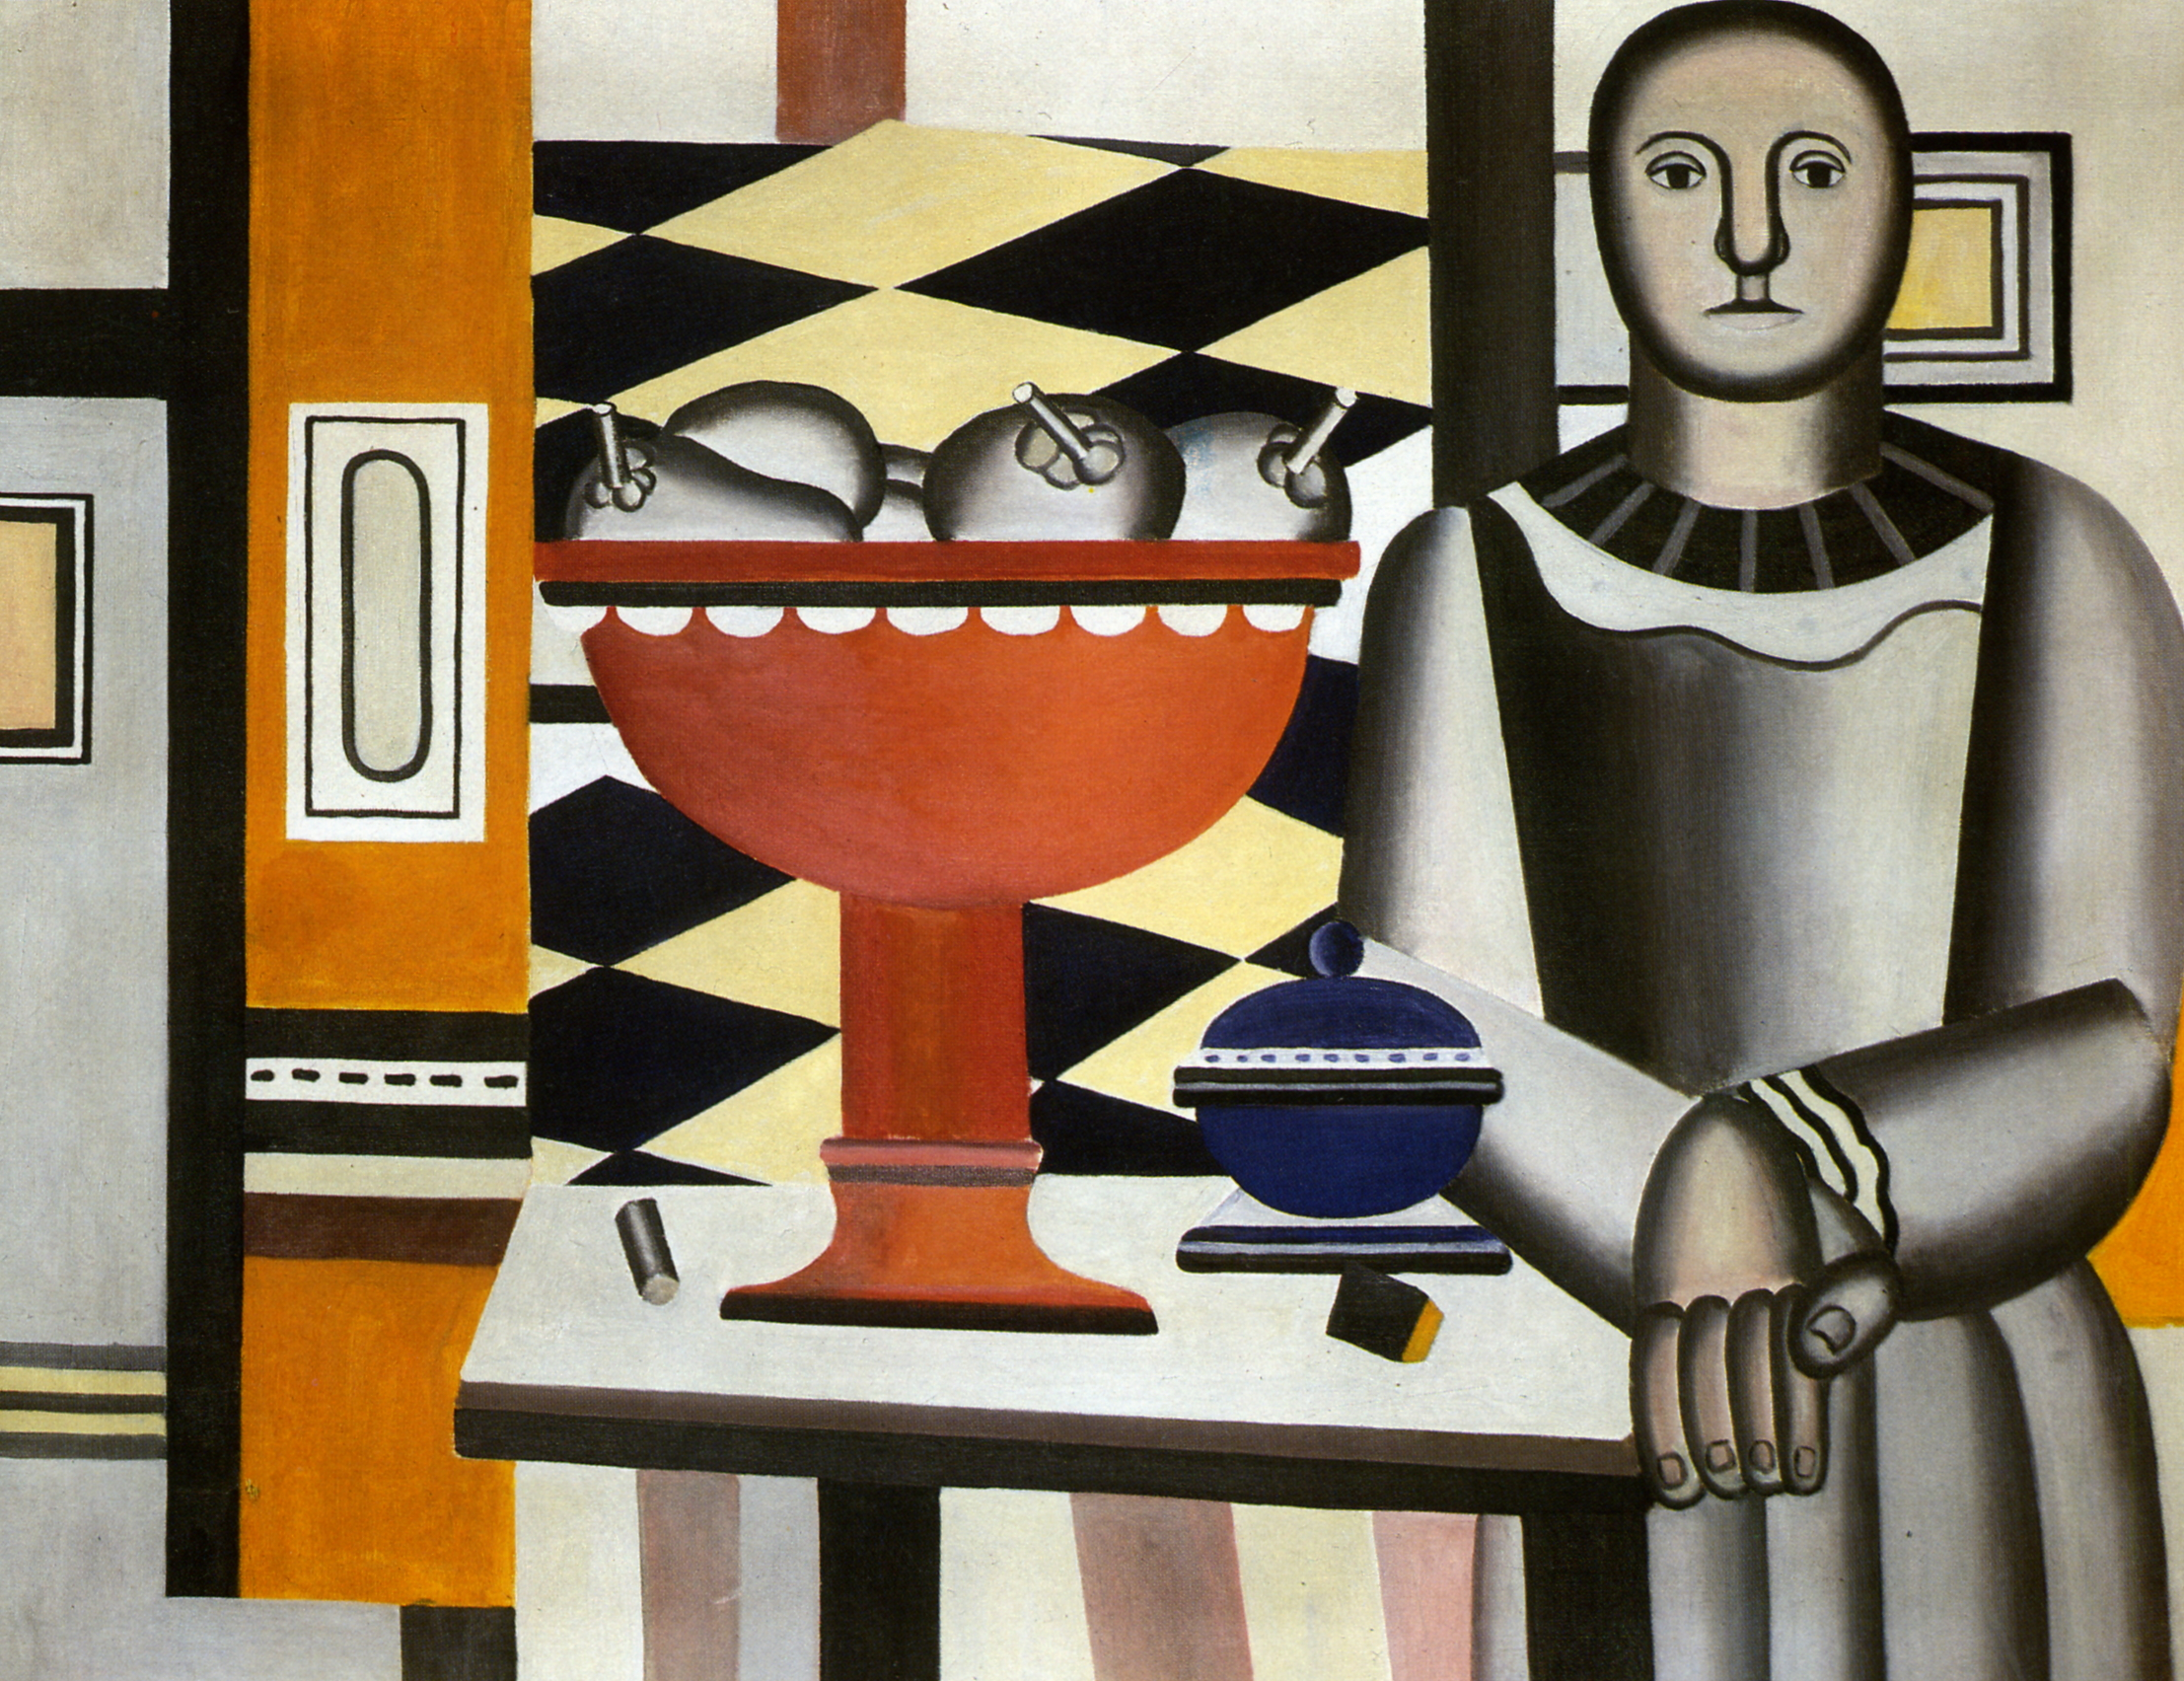 biography of fernand lger a french painter who influenced cubism and constructivism Fernand leger biography of french cubist painter, noted for tubism, tapestries and stained glass art fernand leger (france, 1881-1955) - el mecánico / #cubismo see.